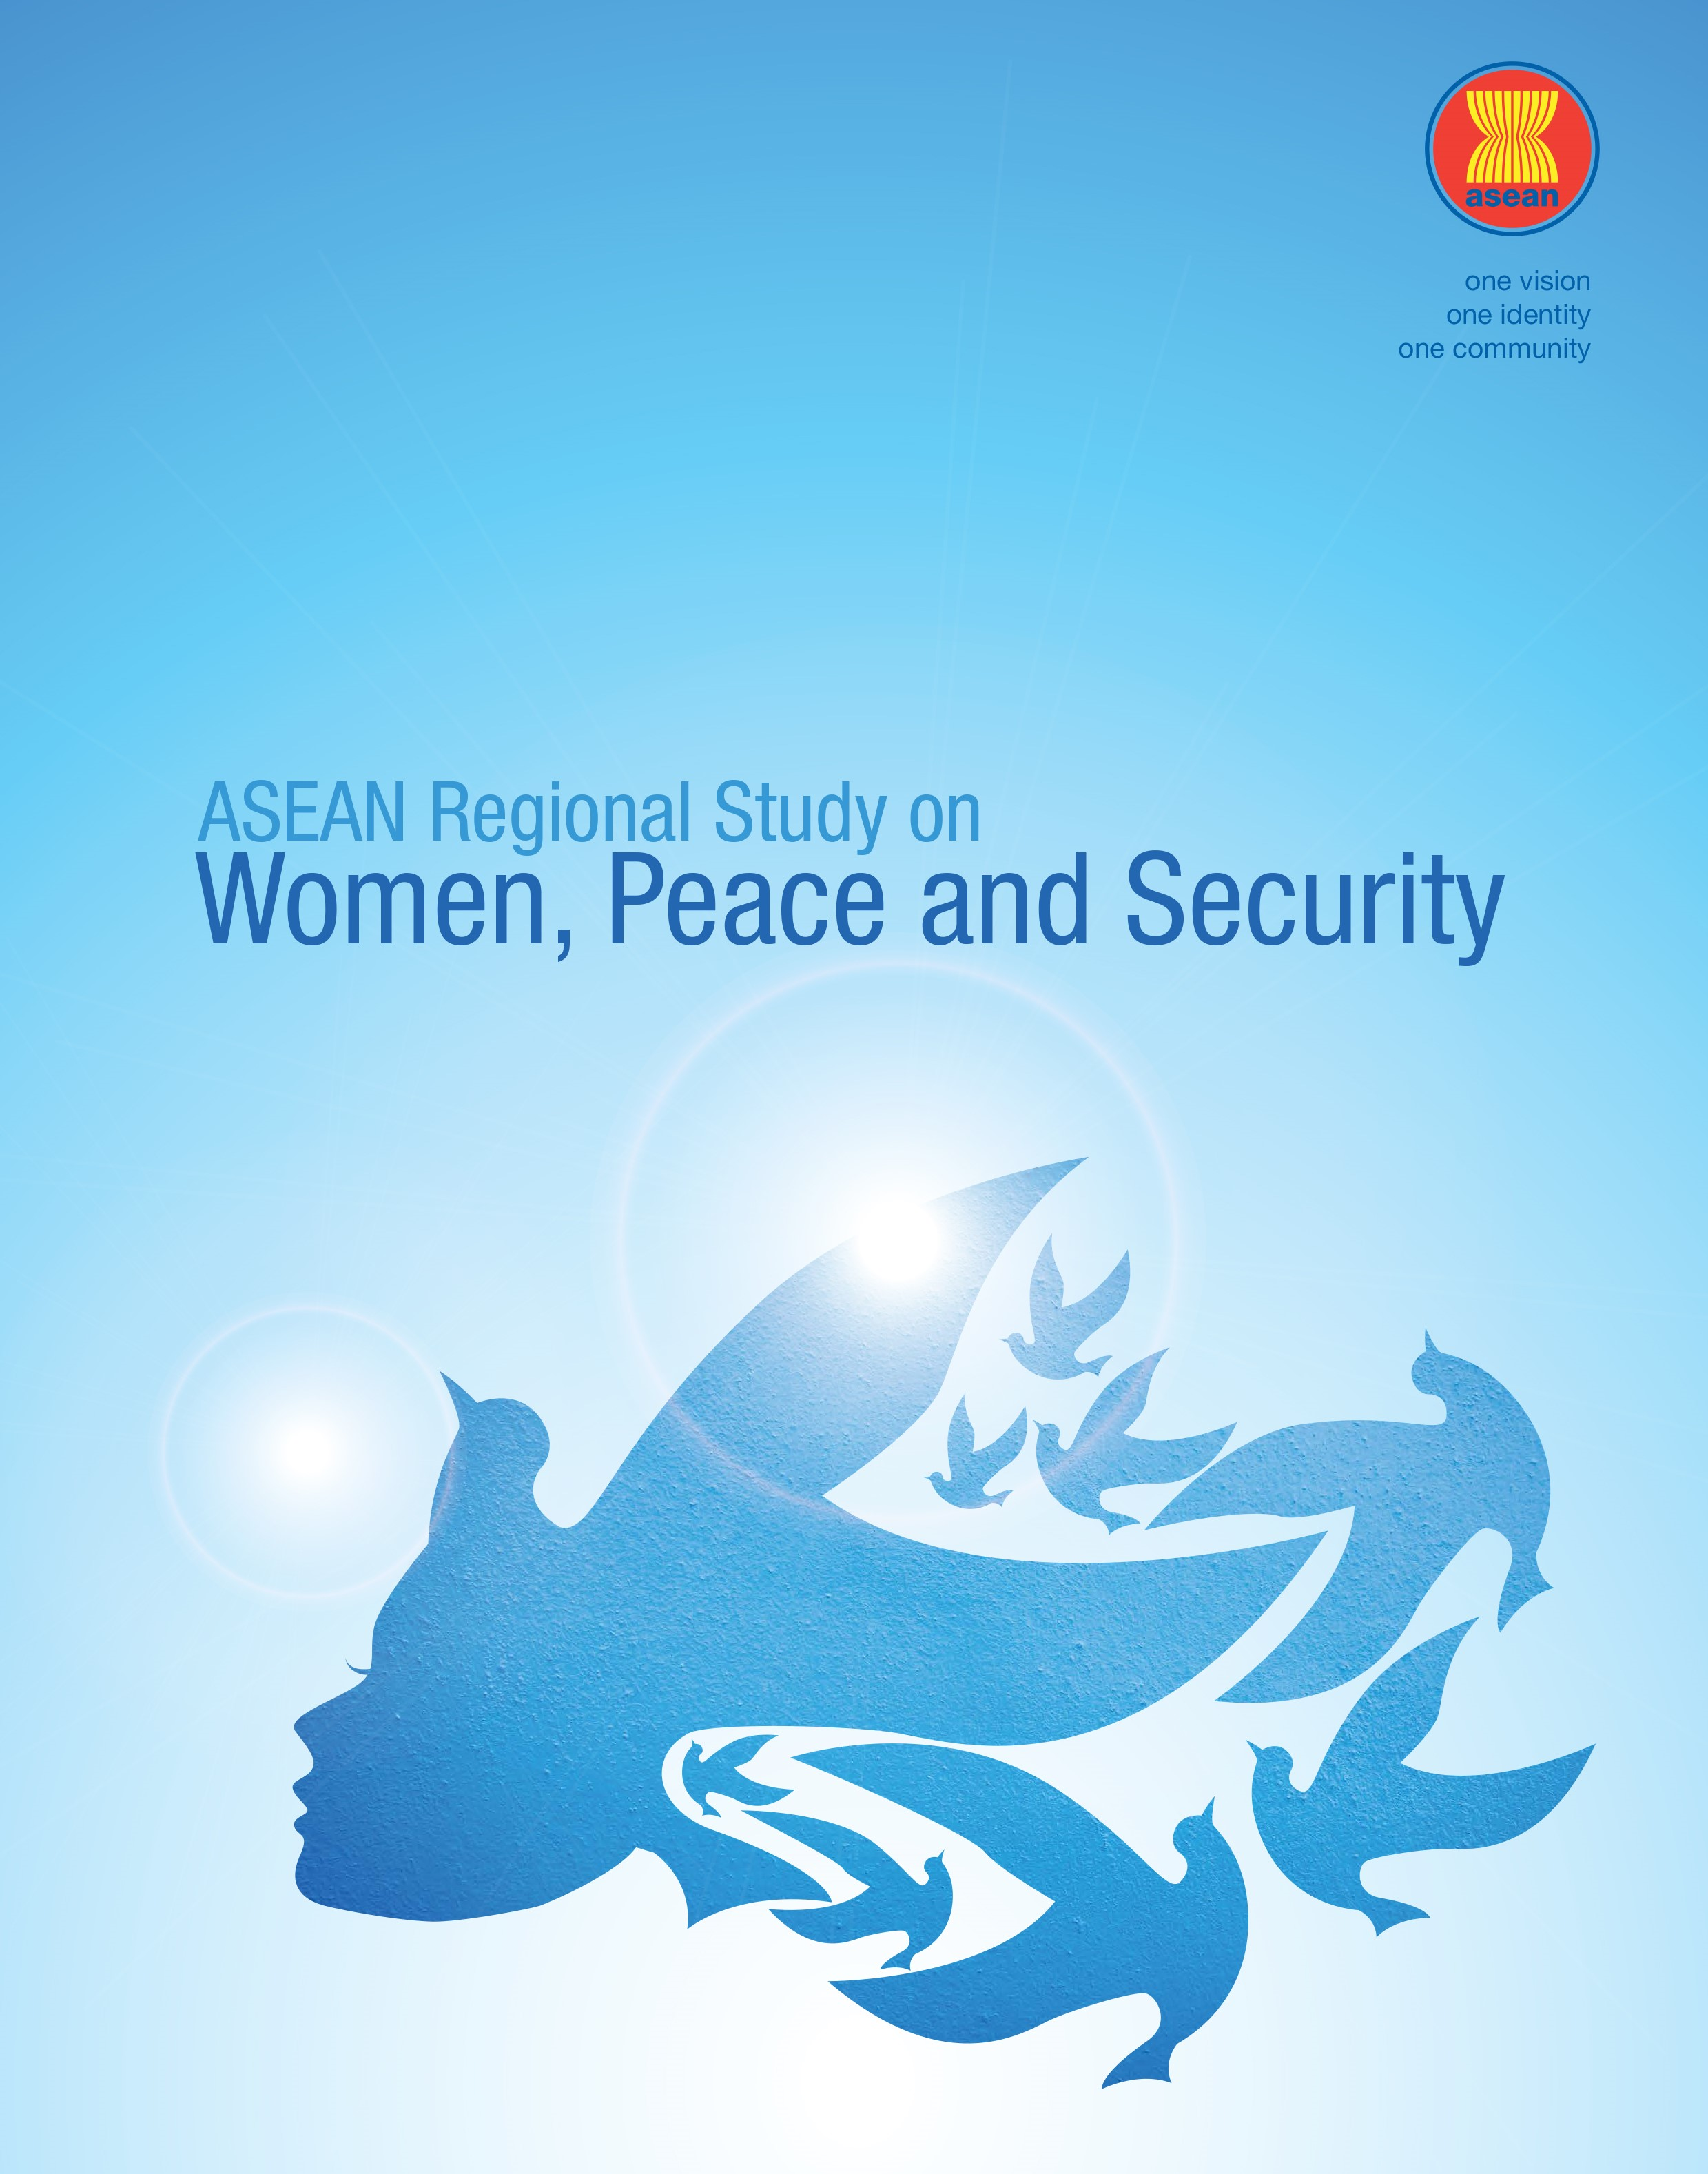 The ASEAN Regional Study on Women, Peace and Security